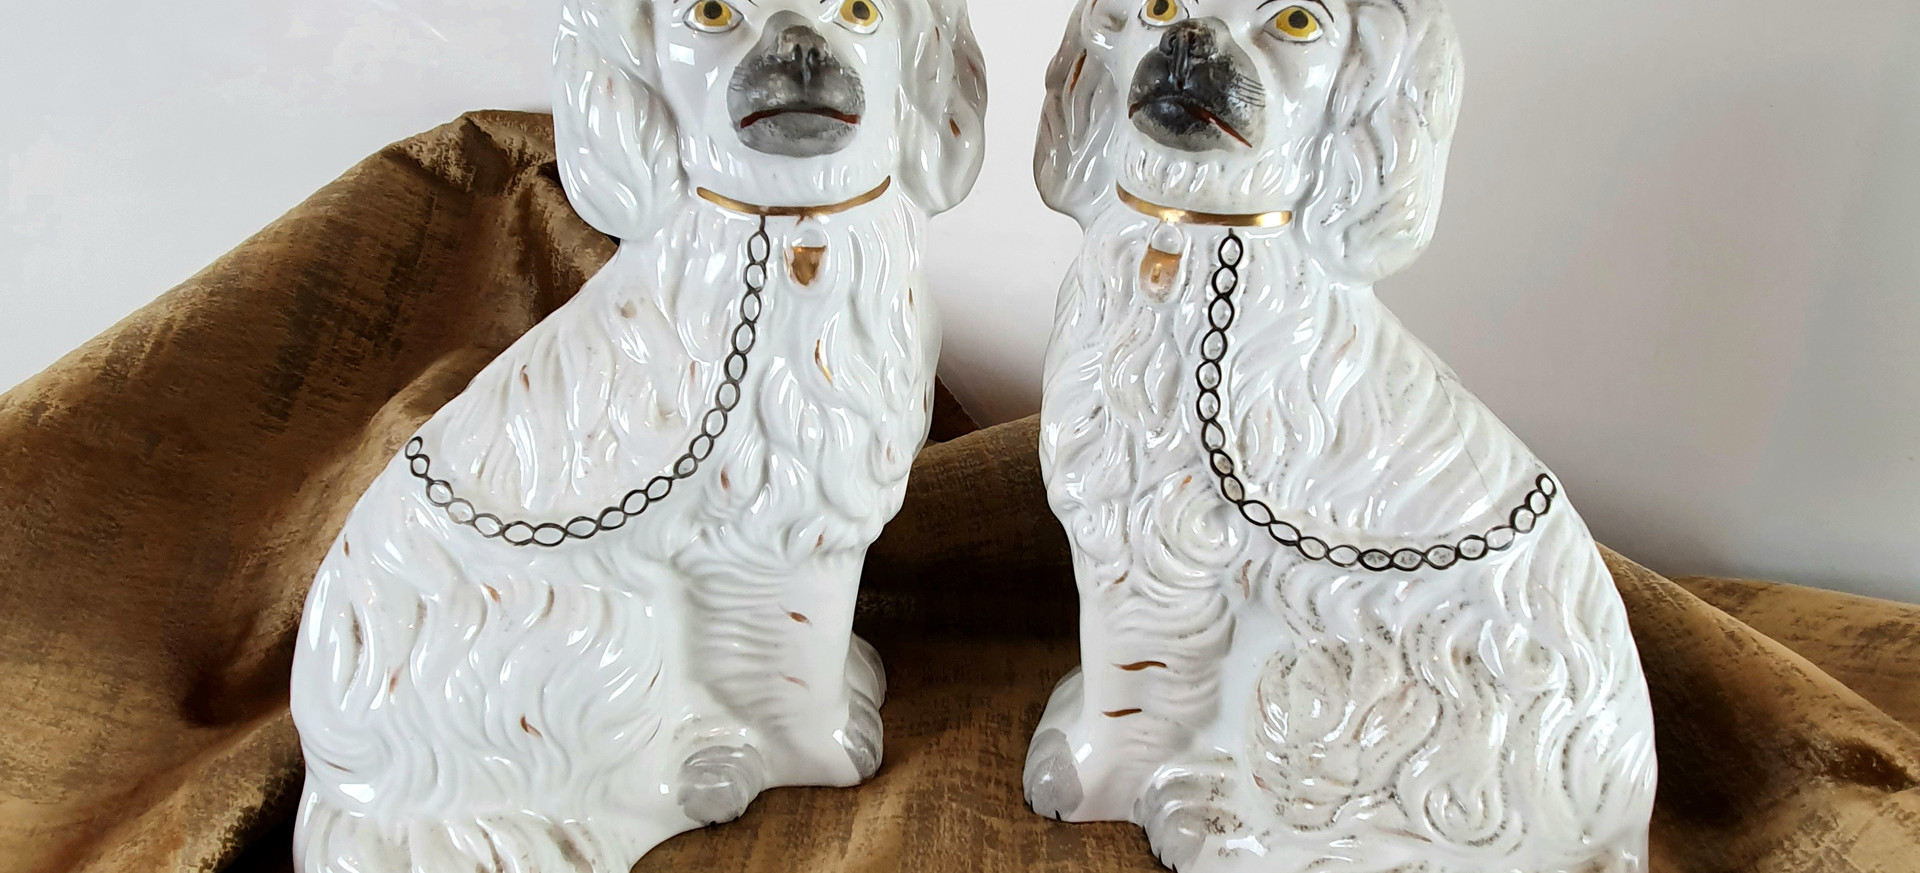 Pair of Antique Staffordshire Dogs